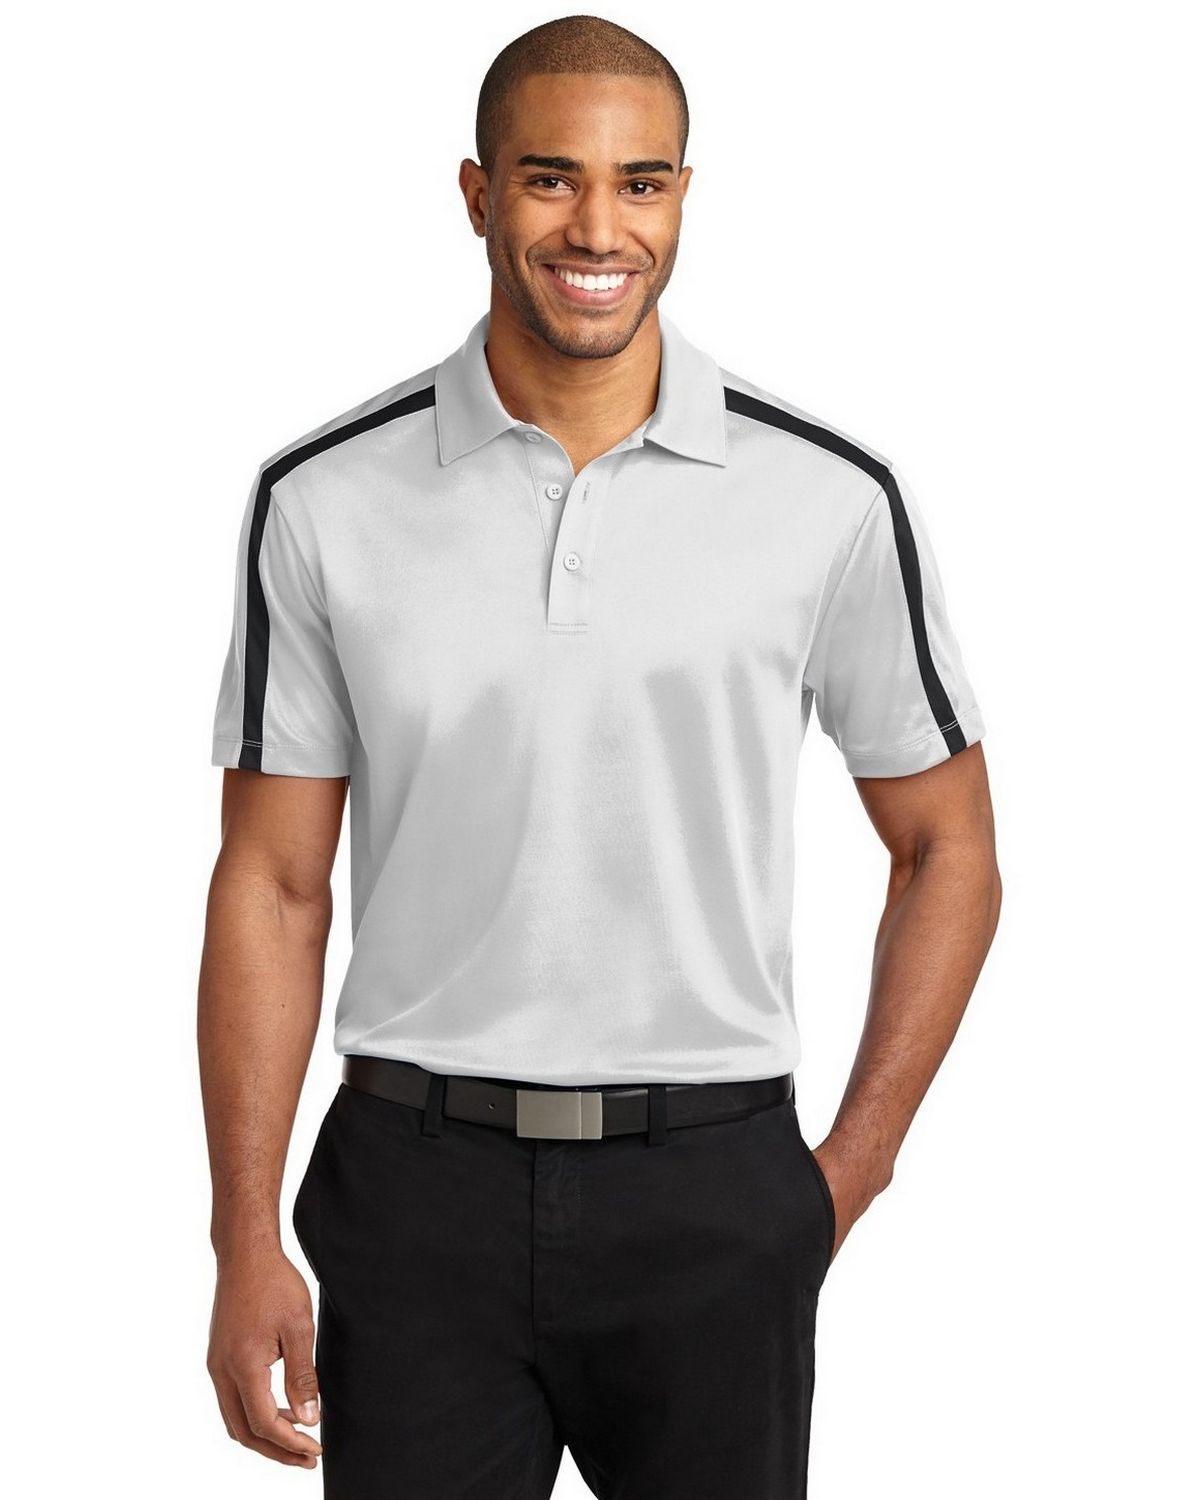 Port Authority K547 Men's Silk Touch Performance Colorblock Stripe Polo - White/Black - XS #silk